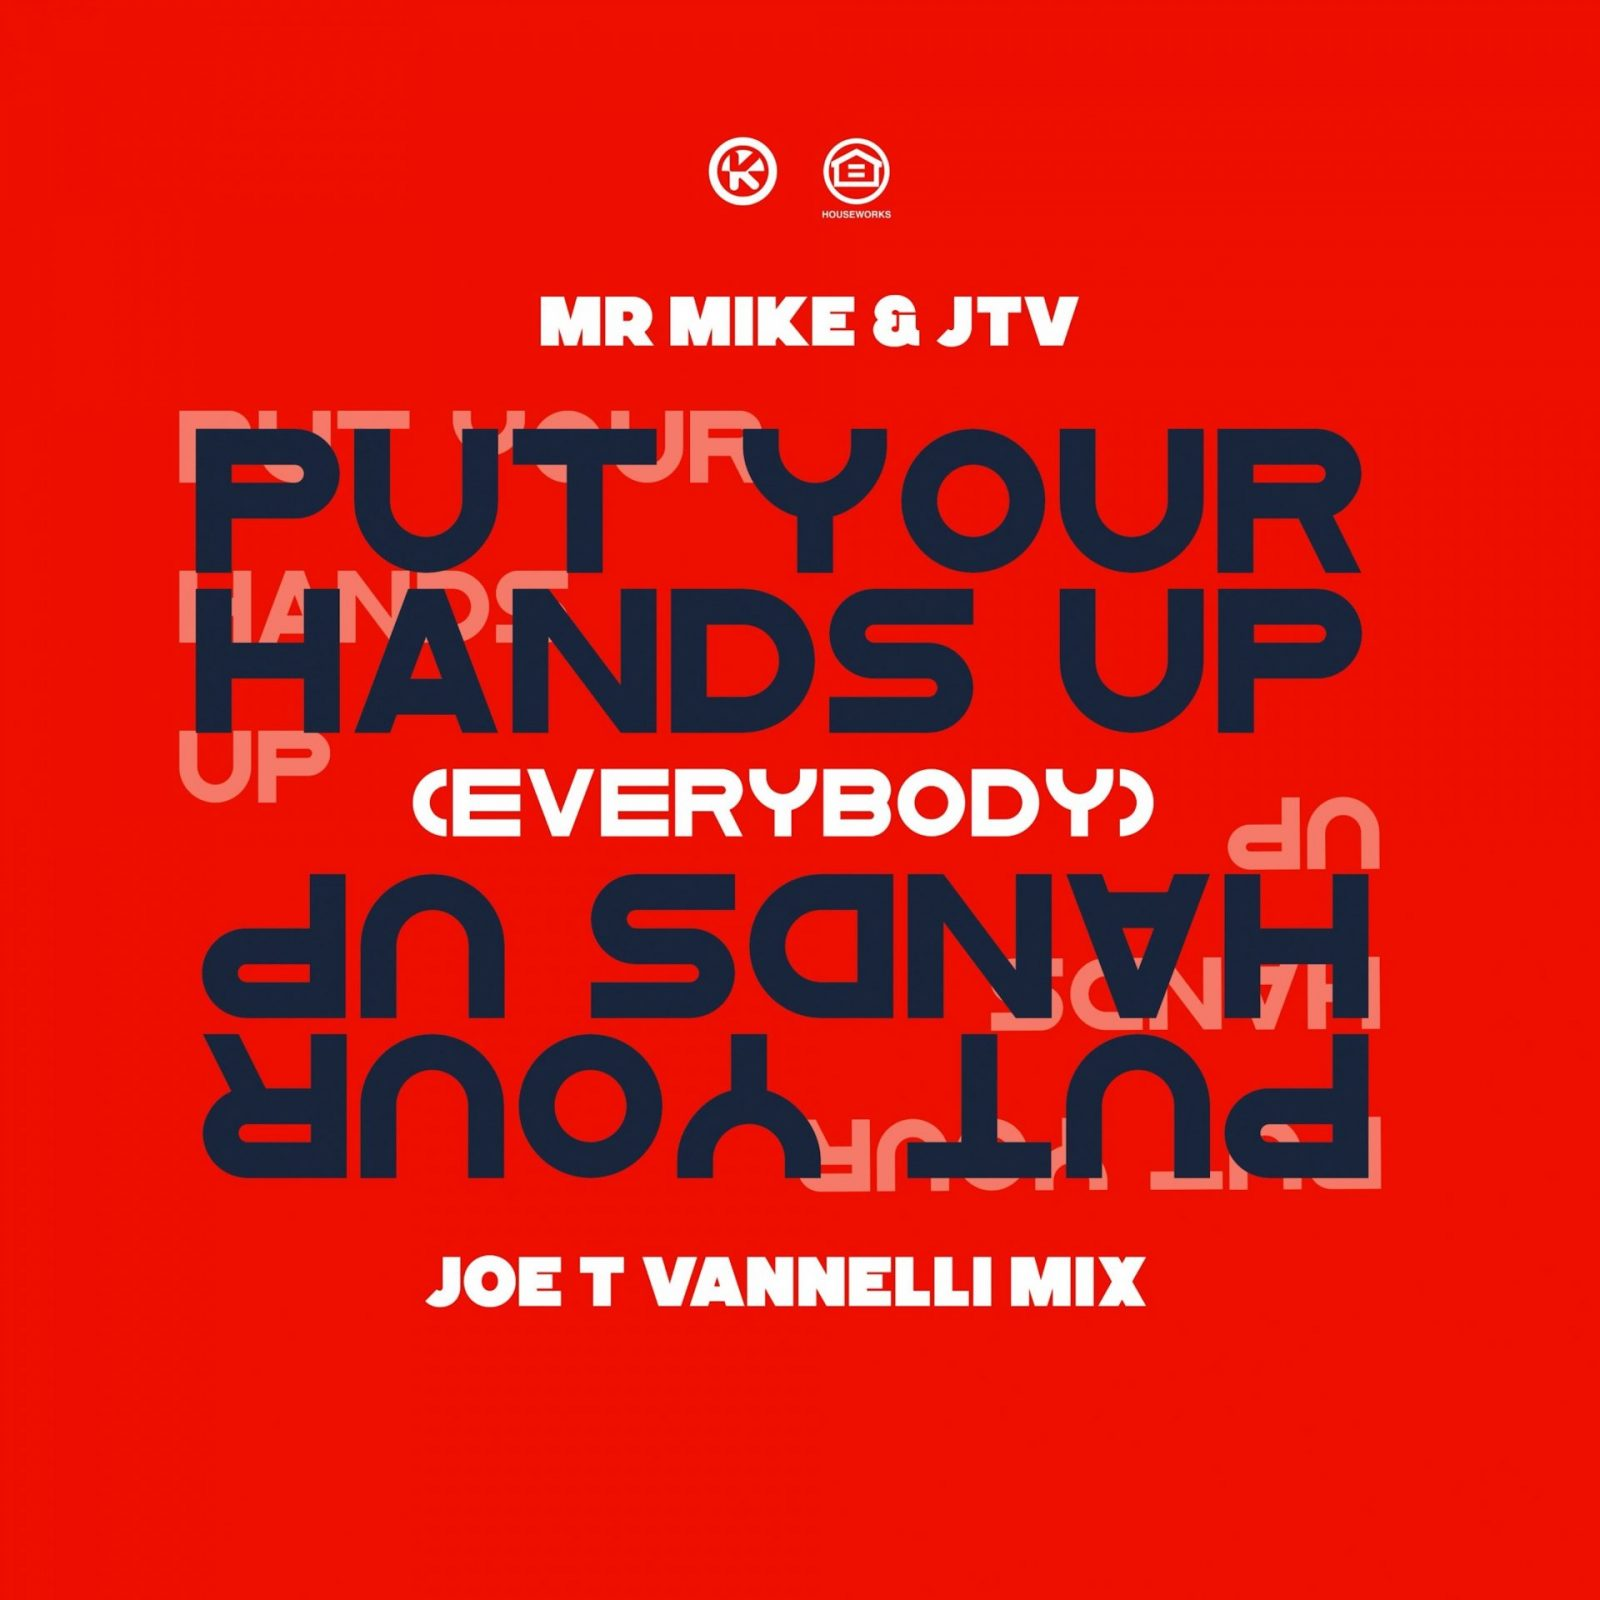 MR. MIKE & JTV – PUT YOUR HANDS UP [EVERYBODY] (JOE T VANNELLI REMIX)